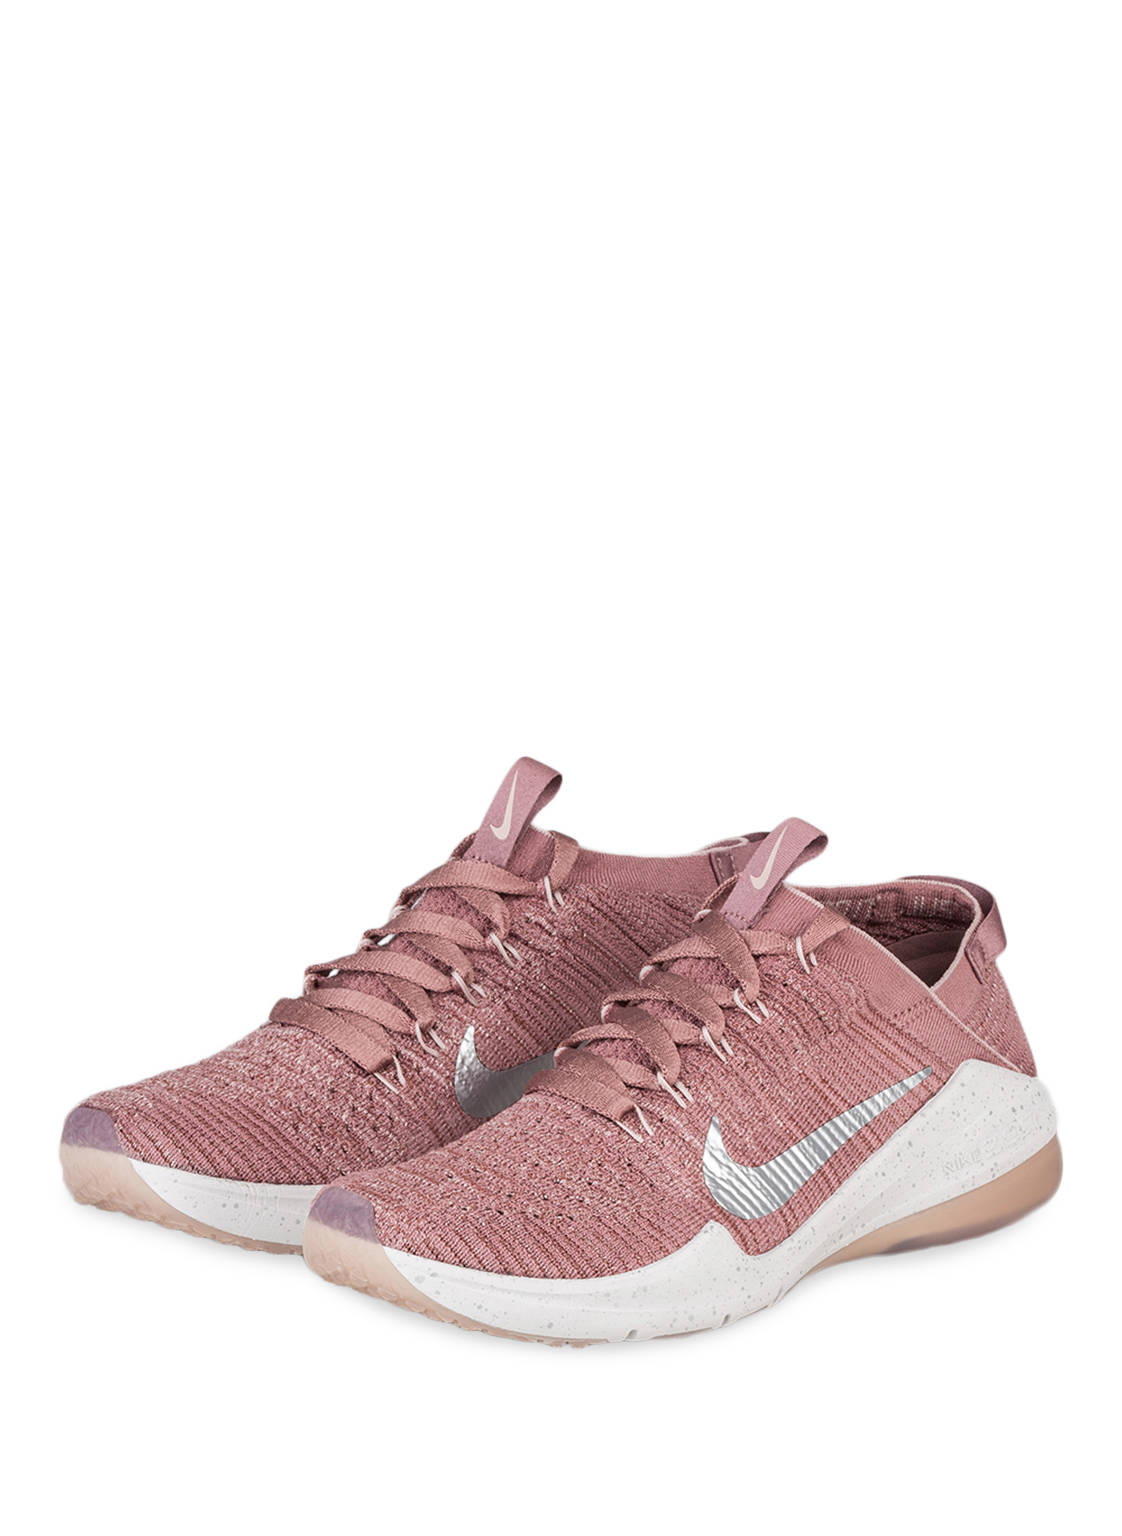 Nike Fitnessschuhe AIR ZOOM FEARLESS FLYKNIT 2 LM